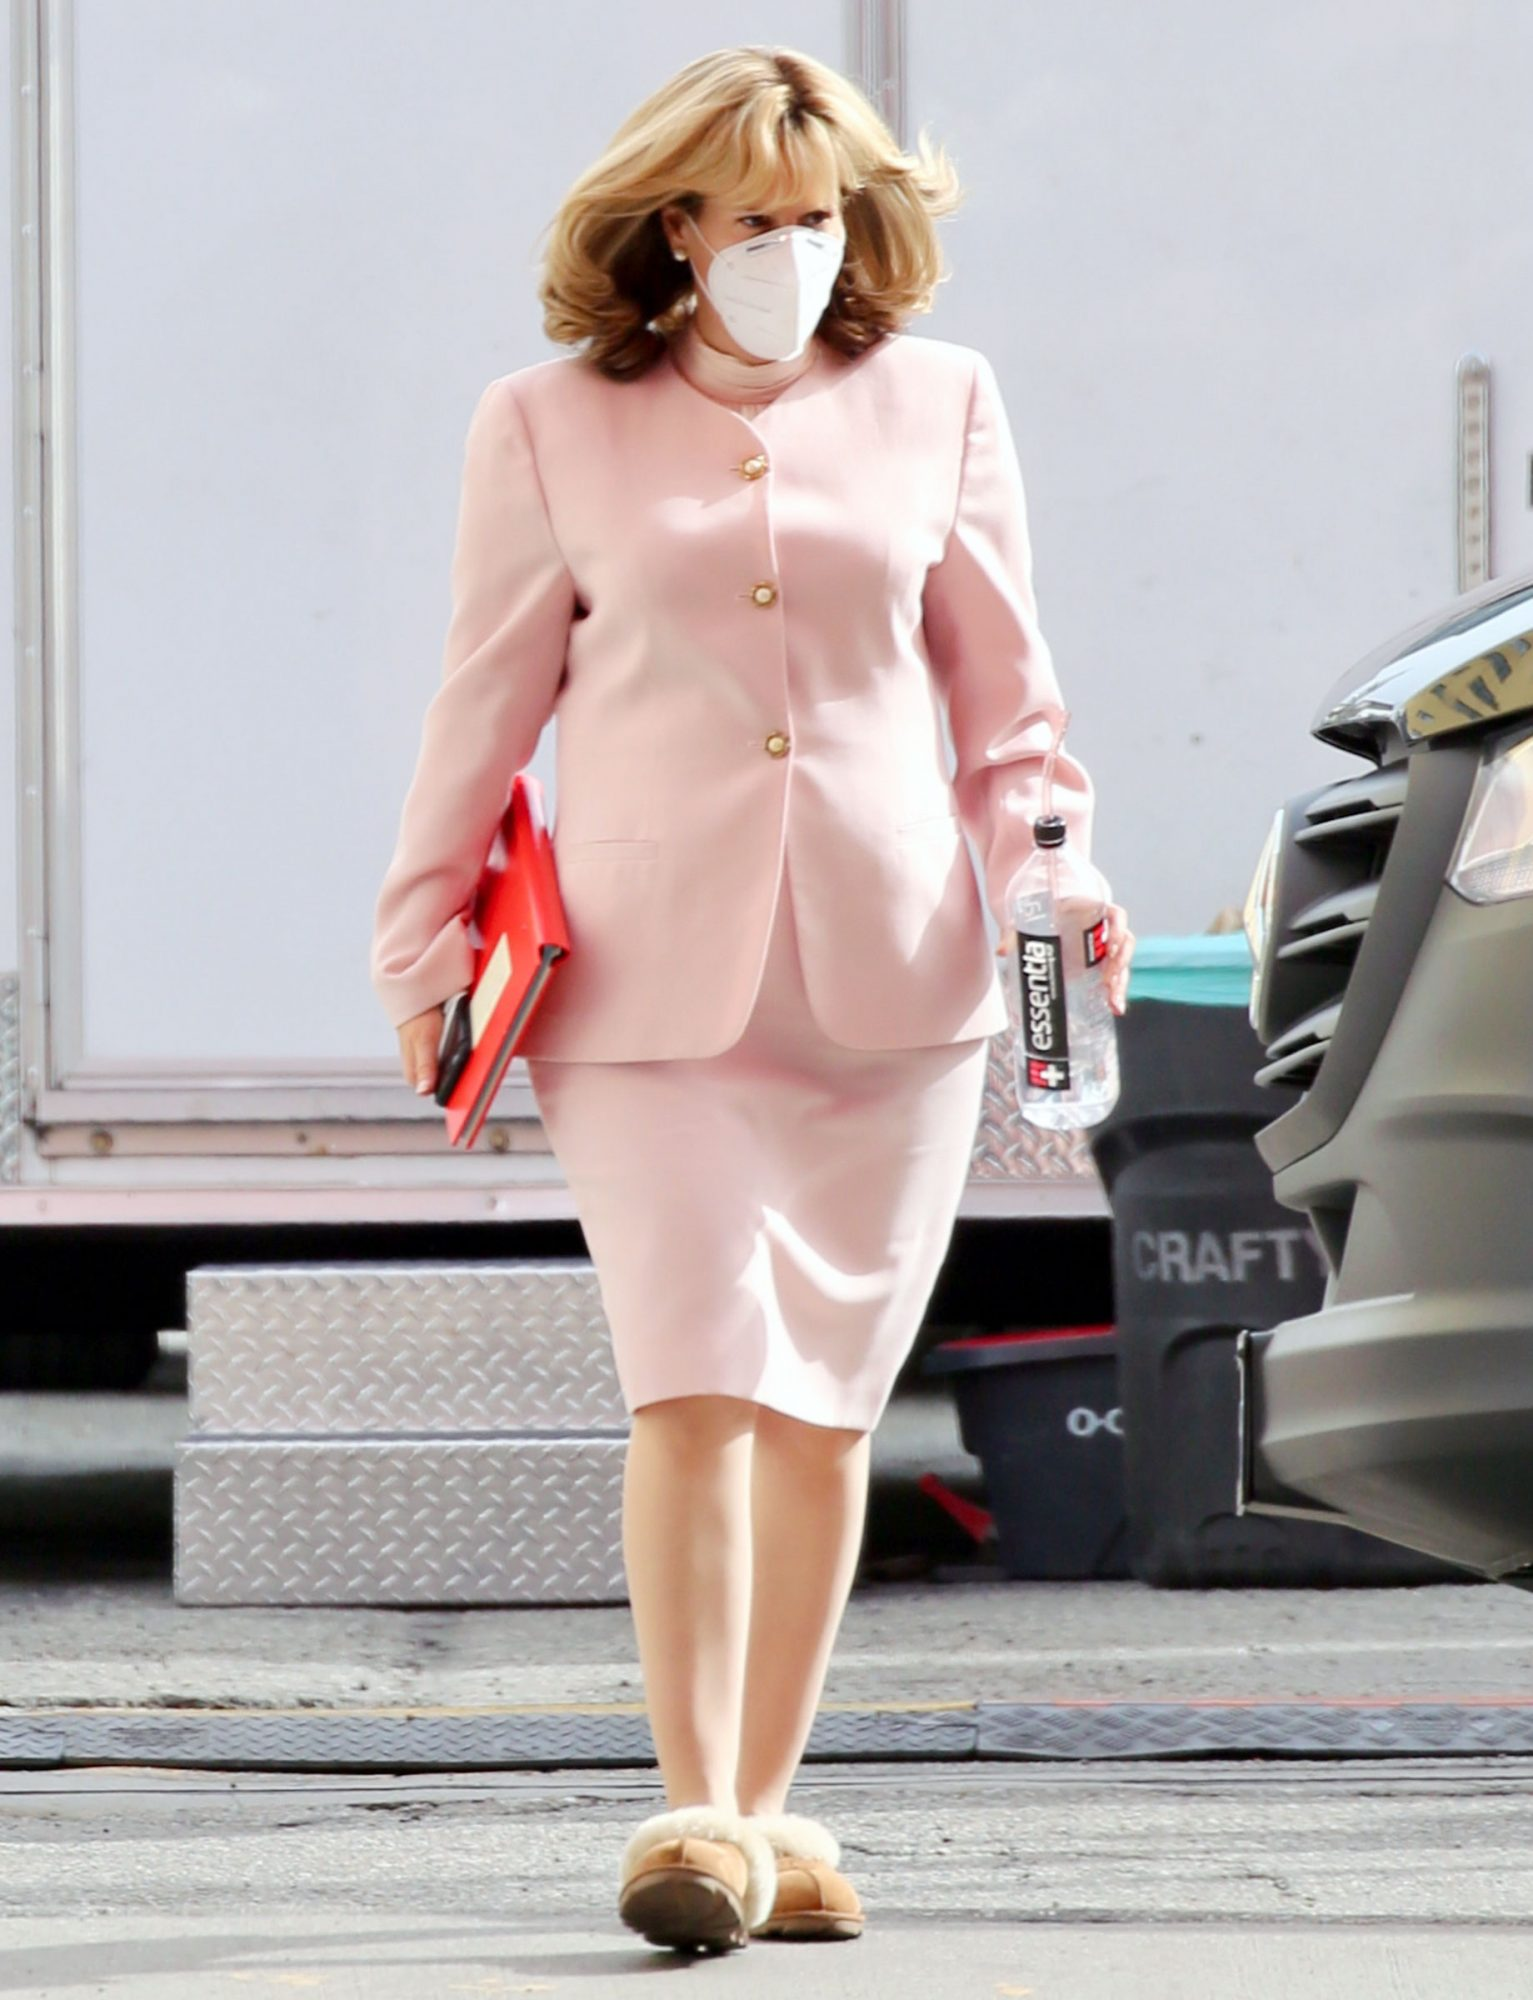 Sarah Paulson as Linda Tripp on the Set of 'American Crime Story' in Los Angeles.